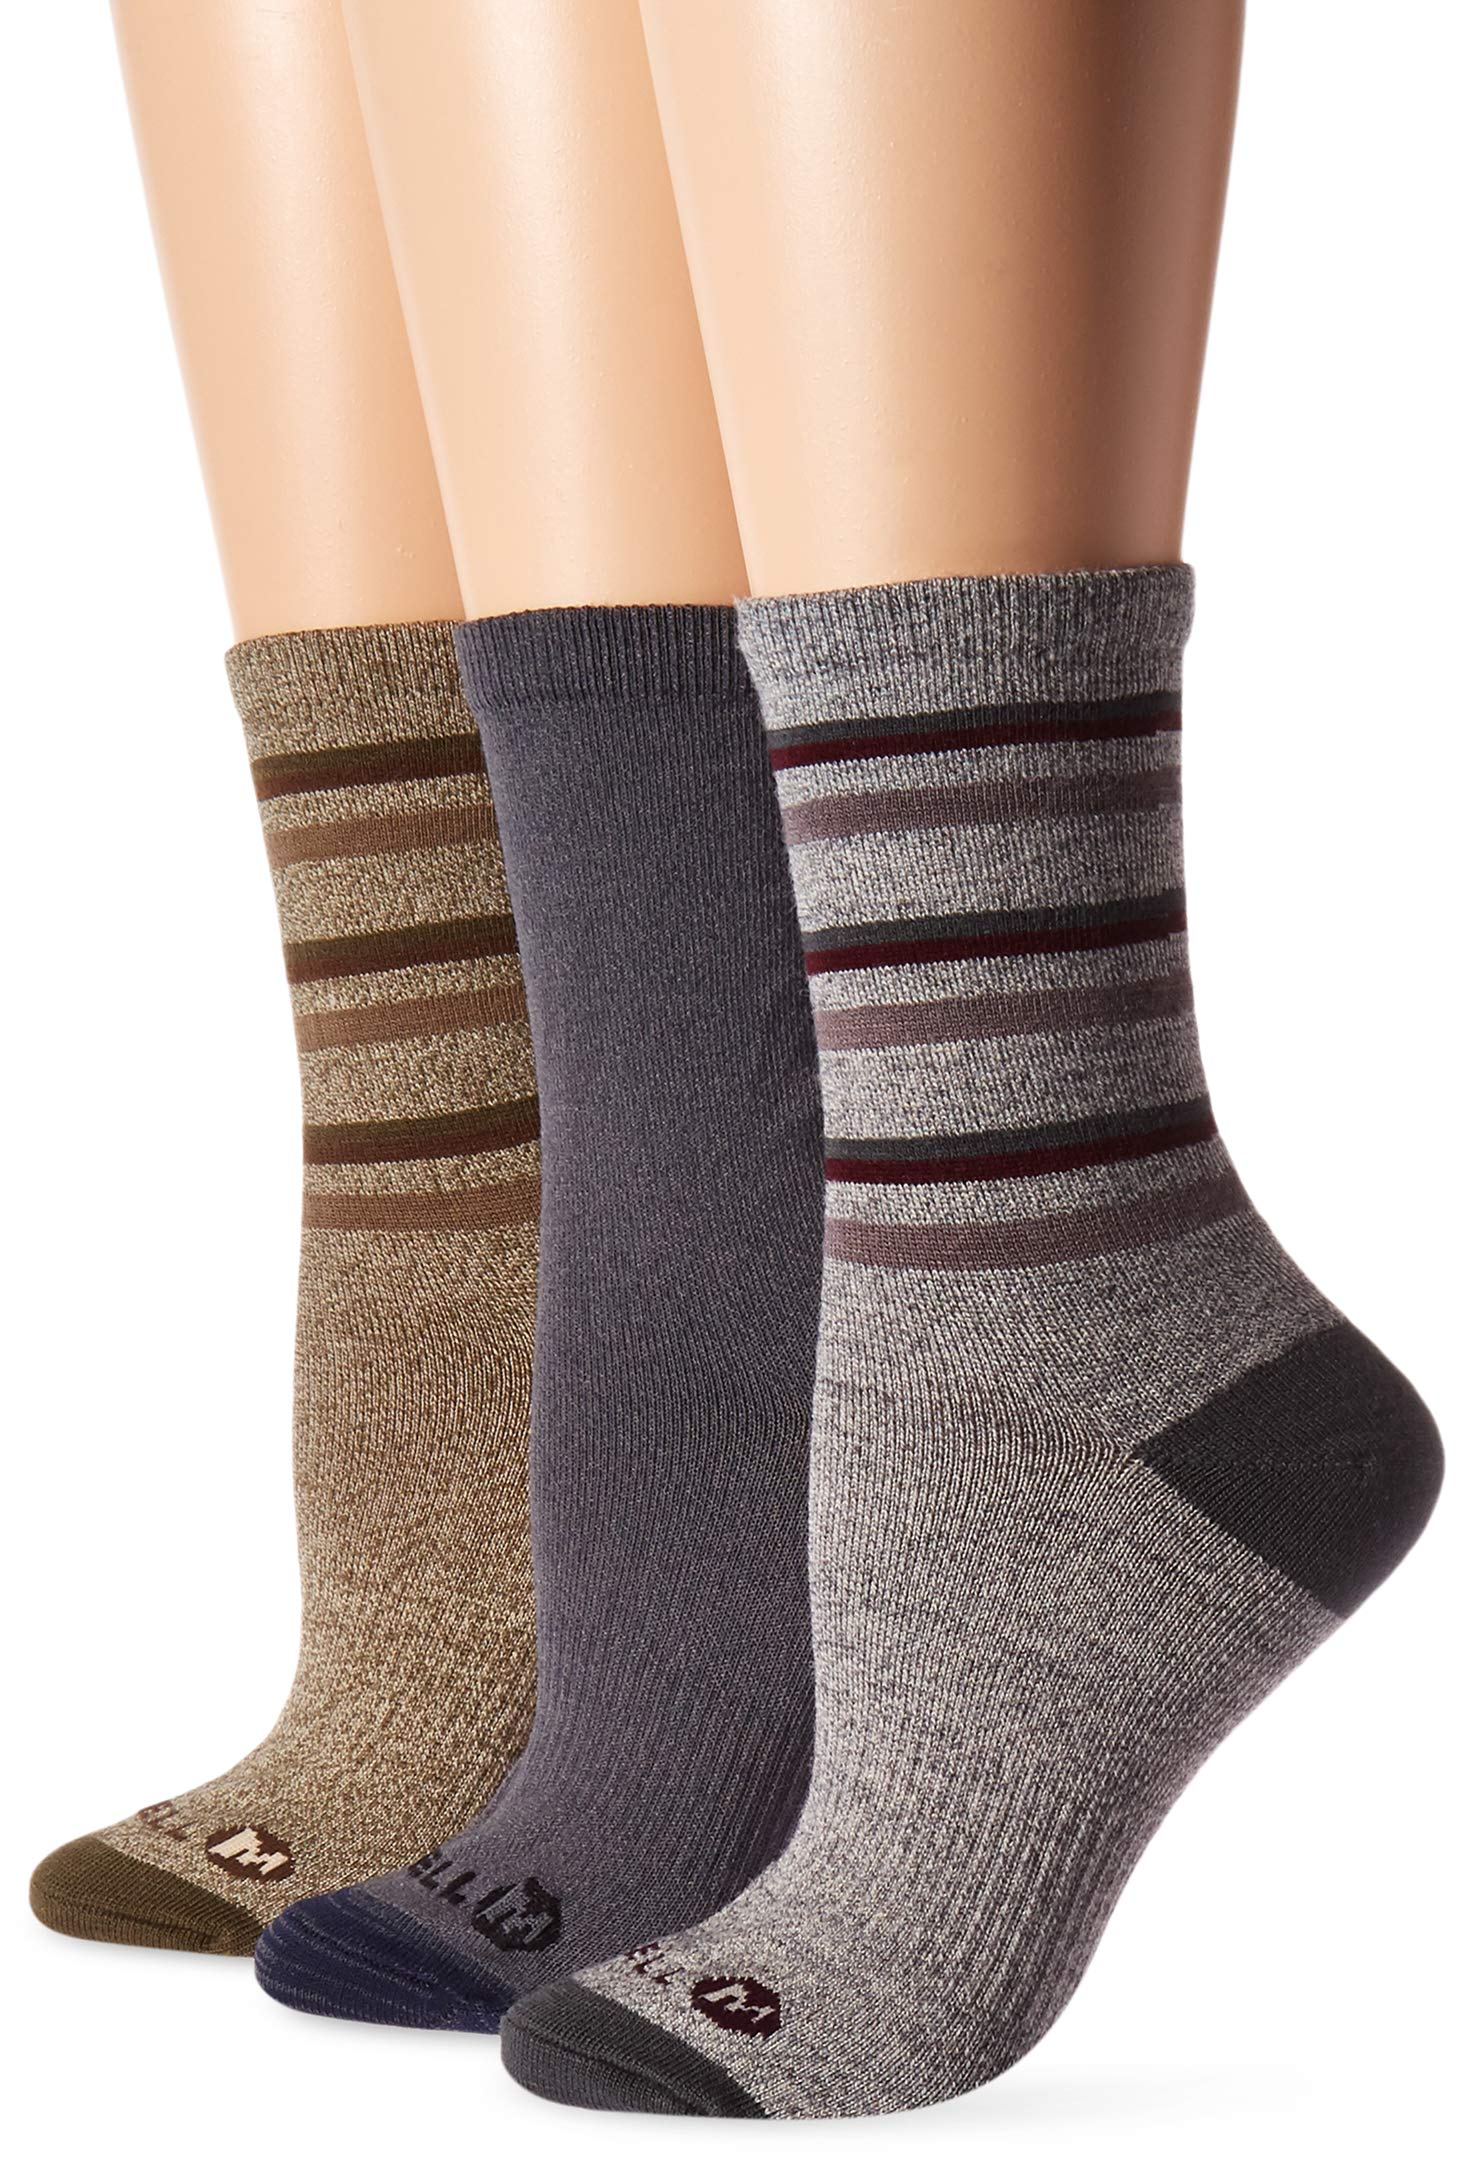 Merrell Women's 3 Pack Cushioned Performance Hiker Socks , Charcoal Marl (Crew), Shoe Size: 4-9.5 by Merrell